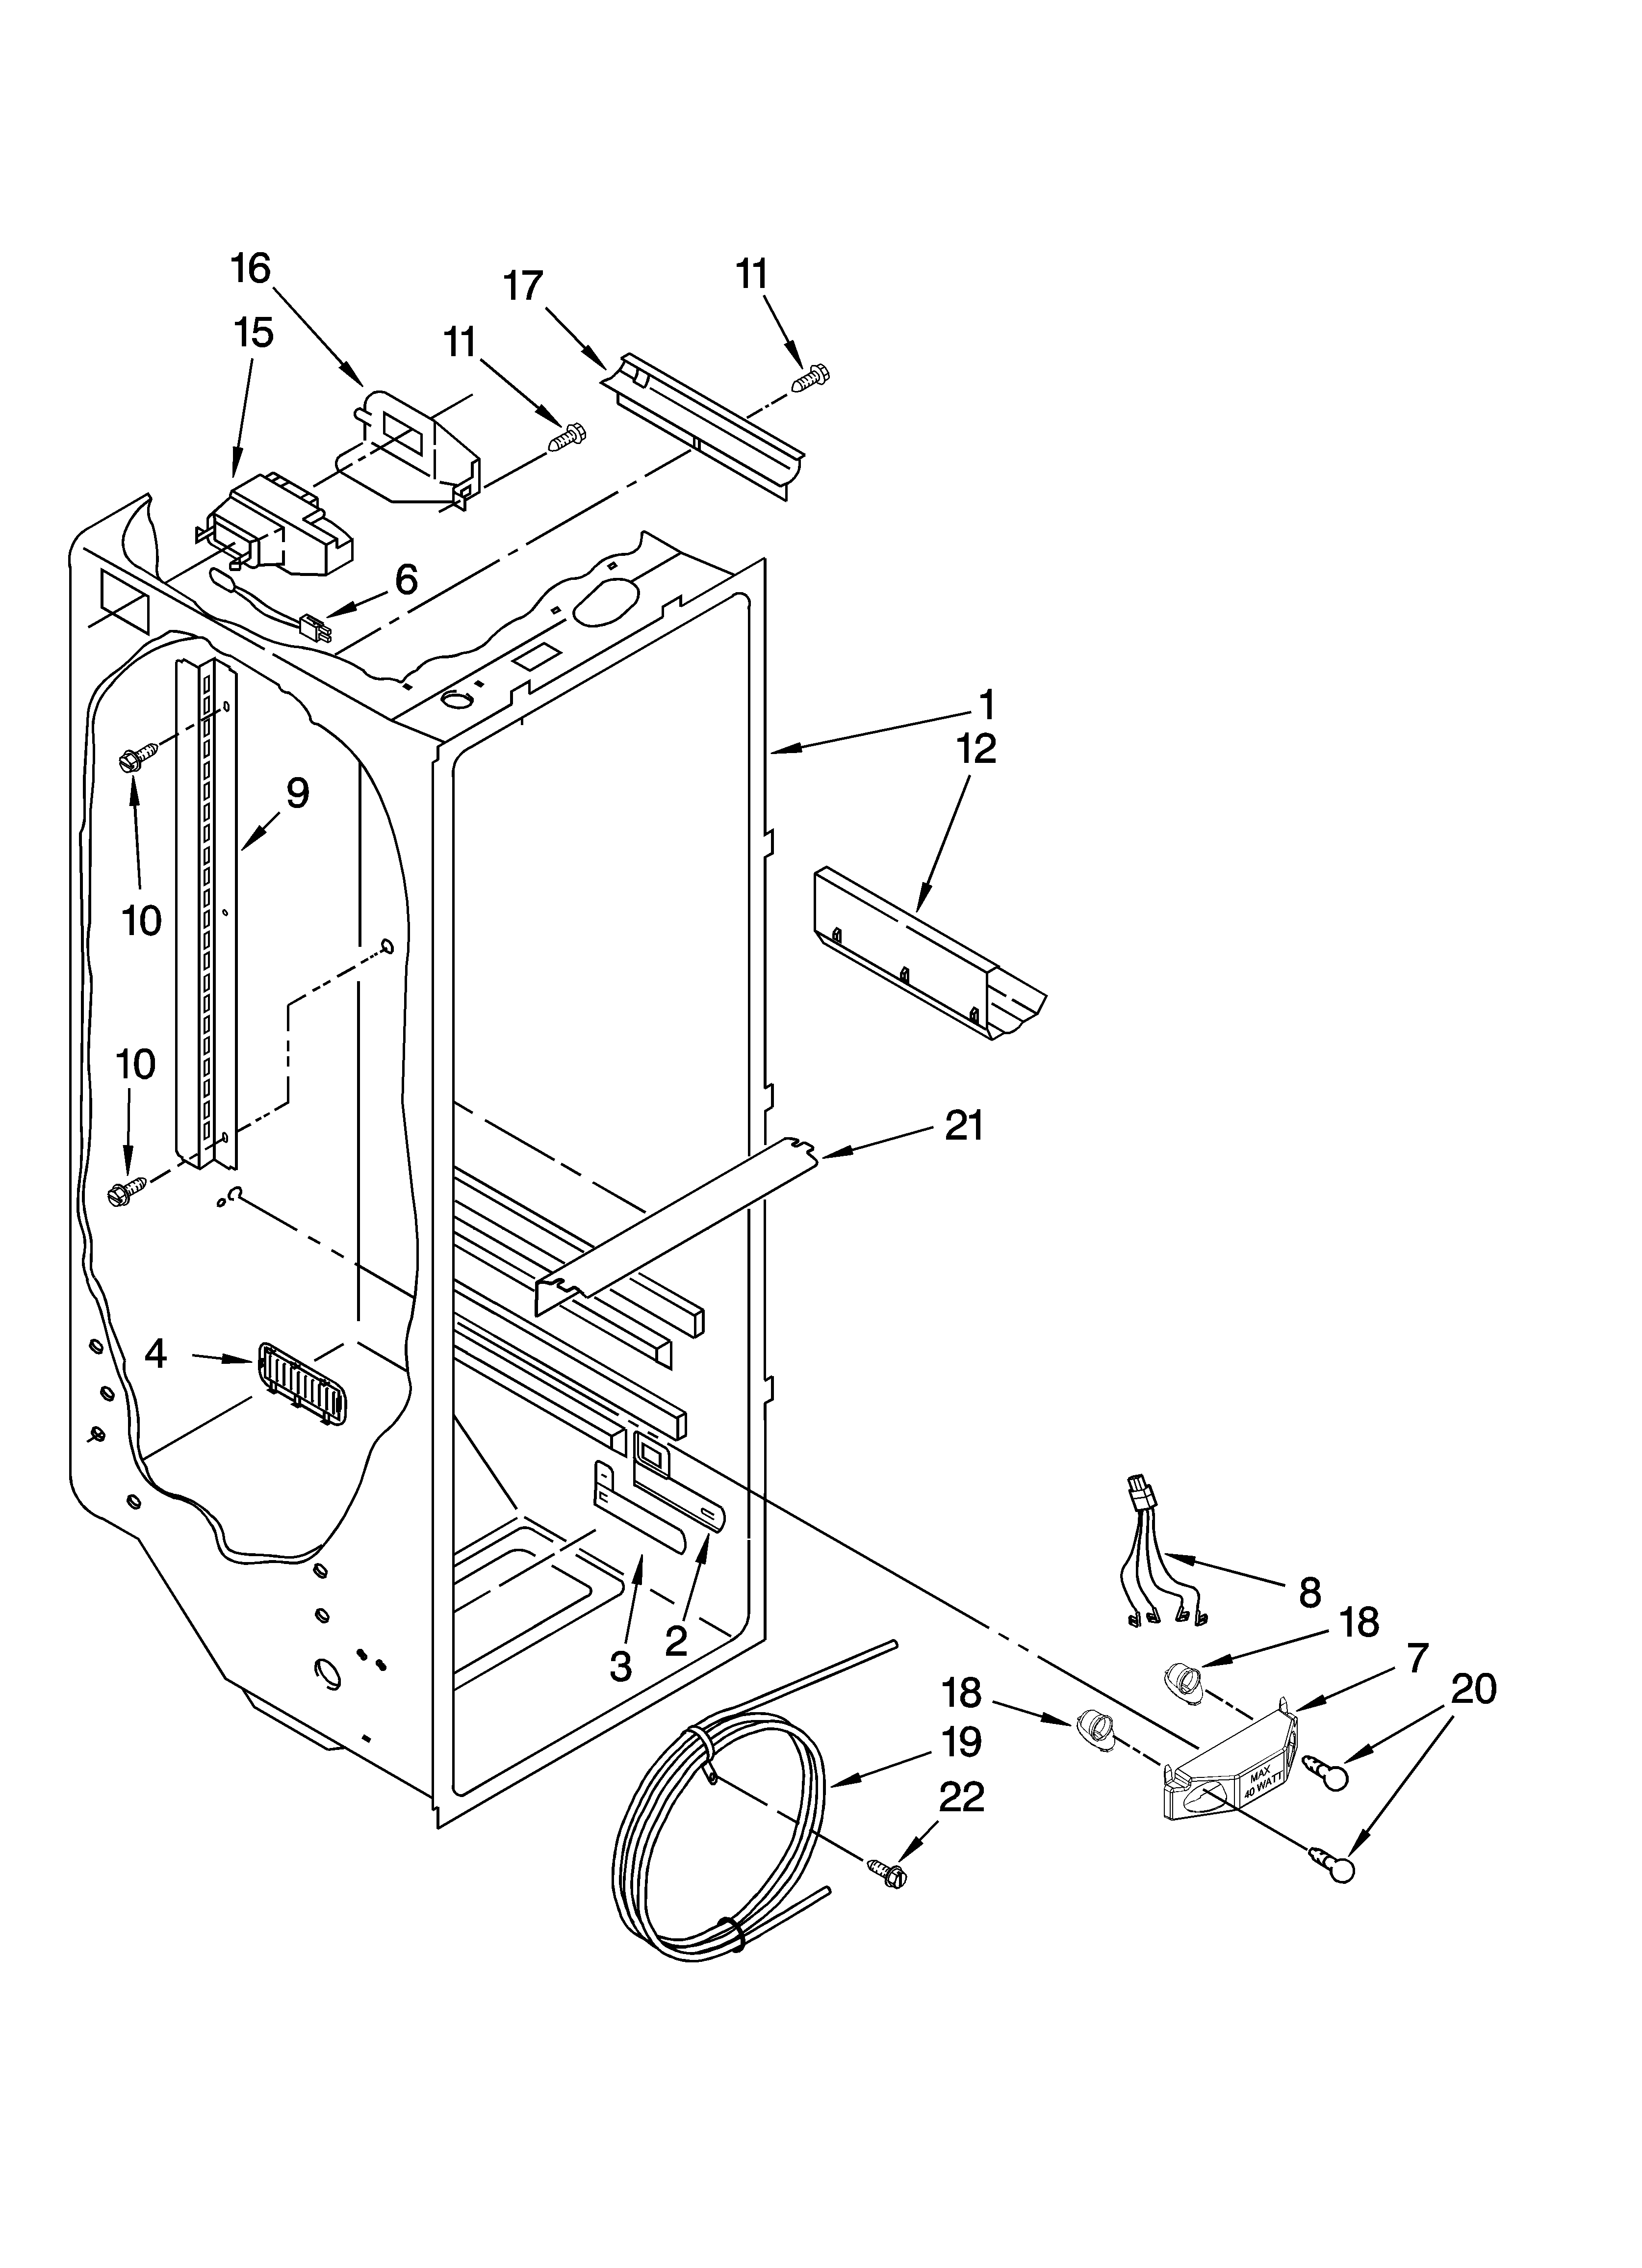 REFRIGERATOR LINER PARTS Diagram & Parts List for Model